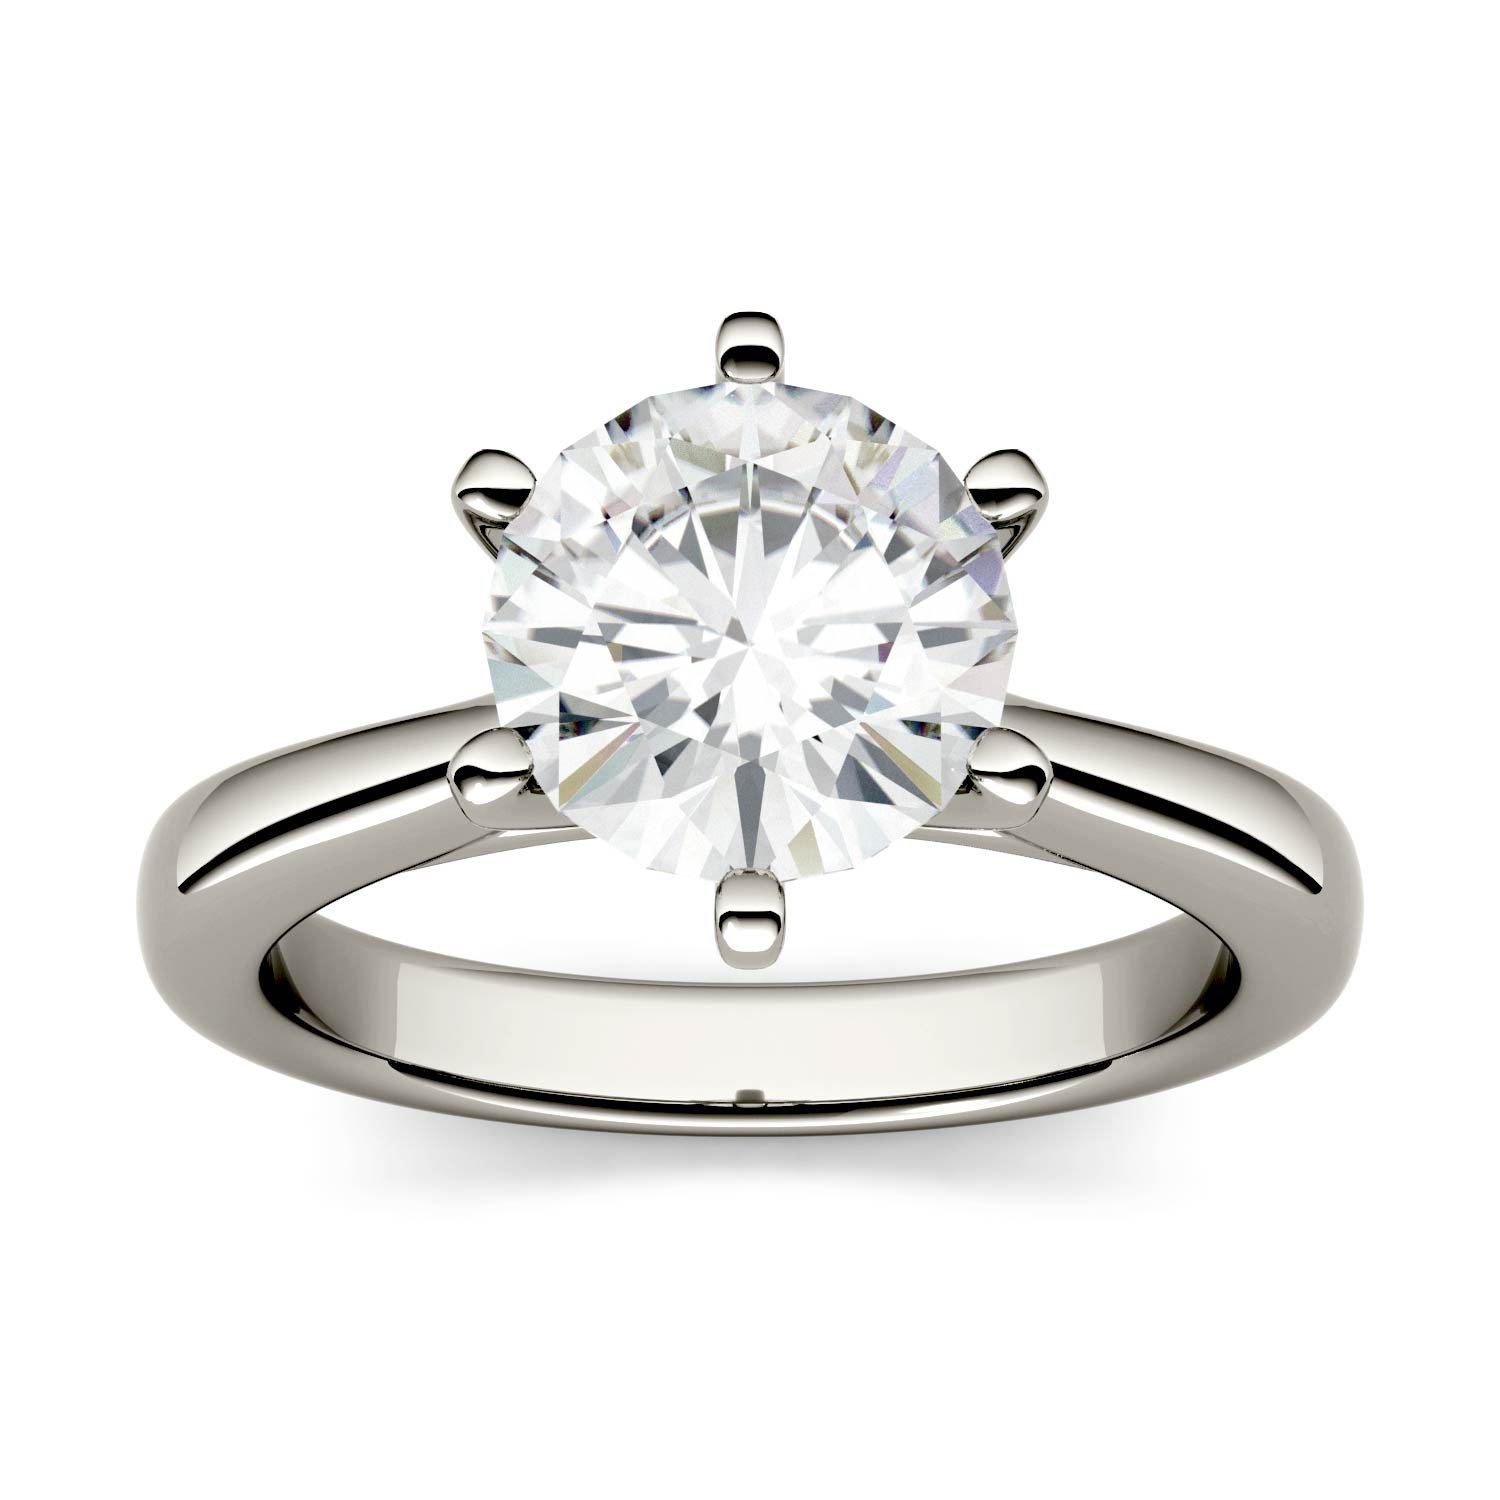 White Gold 8mm Moissanite by Charles & Colvard 6-Prong Solitaire Engagement Ring-size 5, 1.9cttw DEW by Charles & Colvard